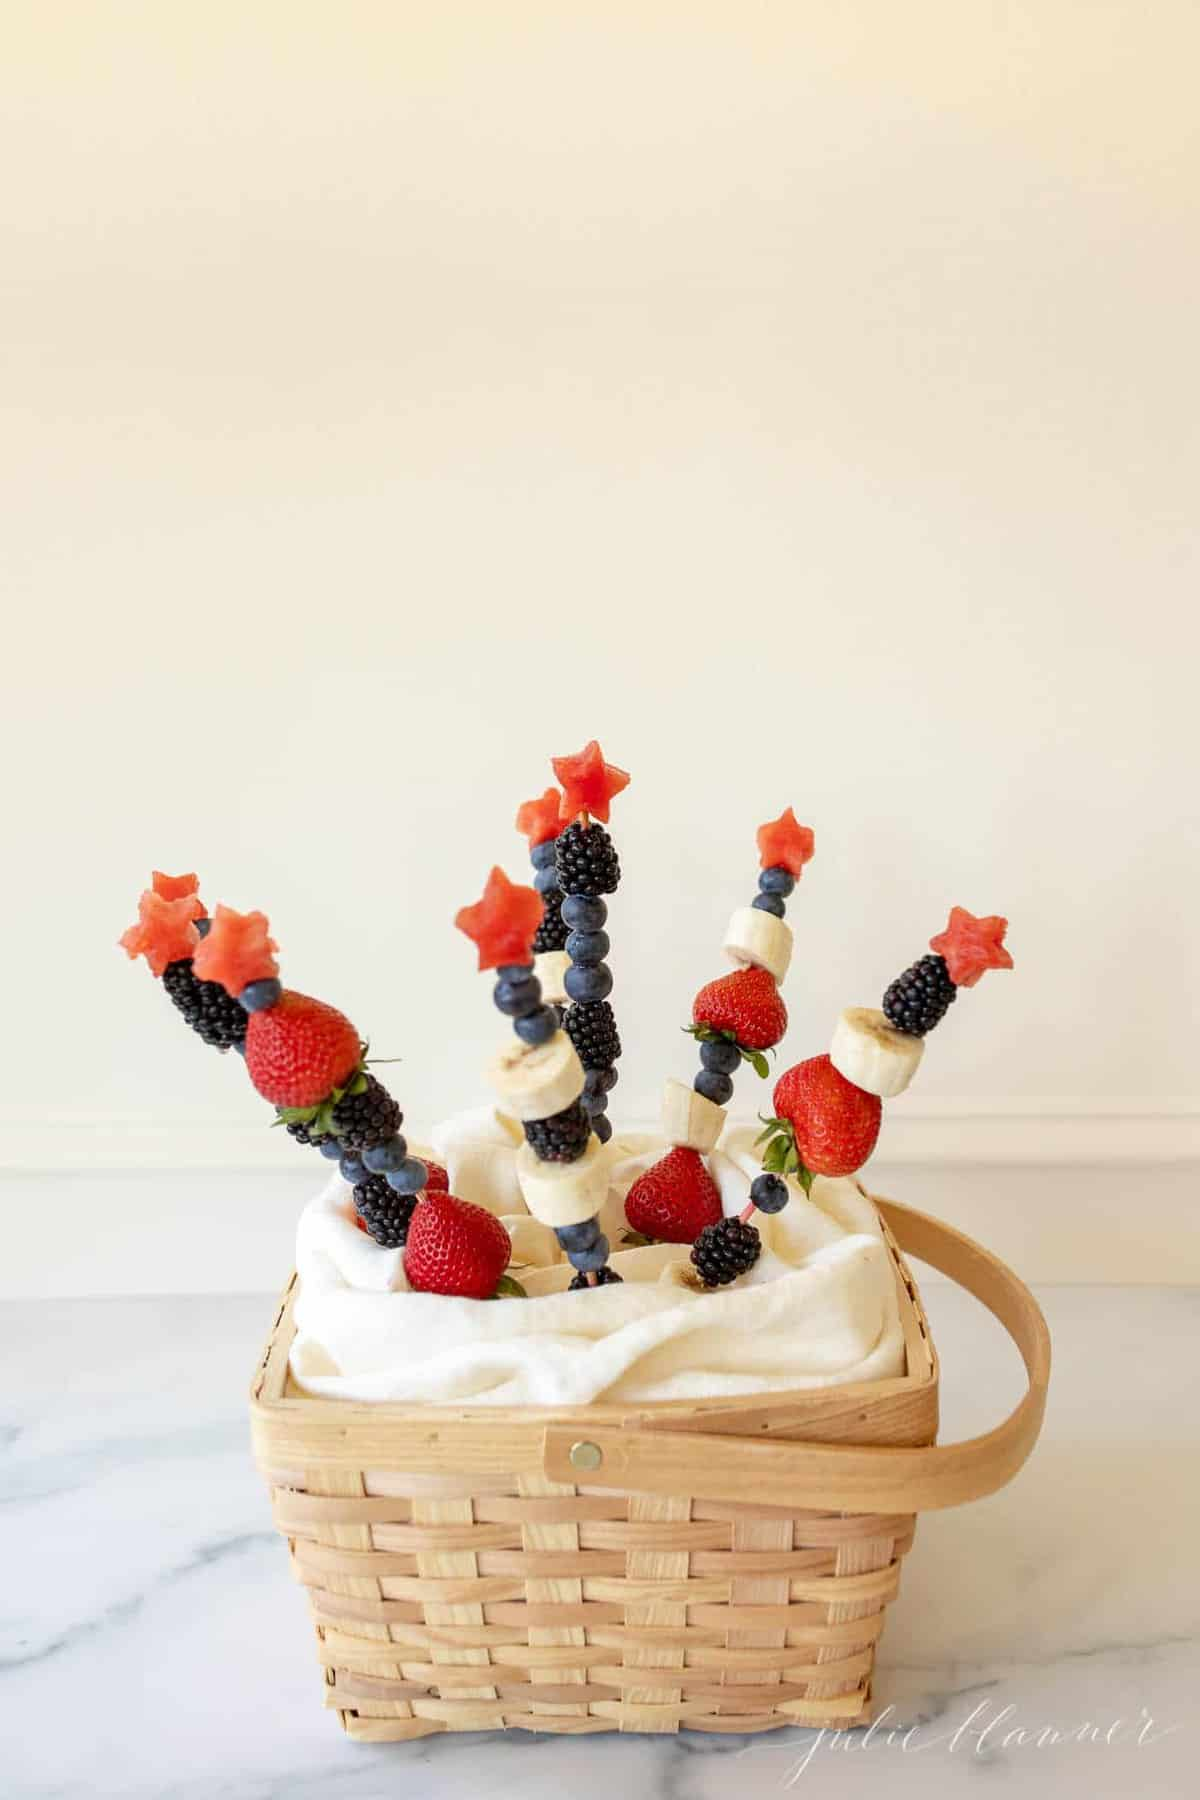 A marble surface with fruit skewers sticking out of the inside.